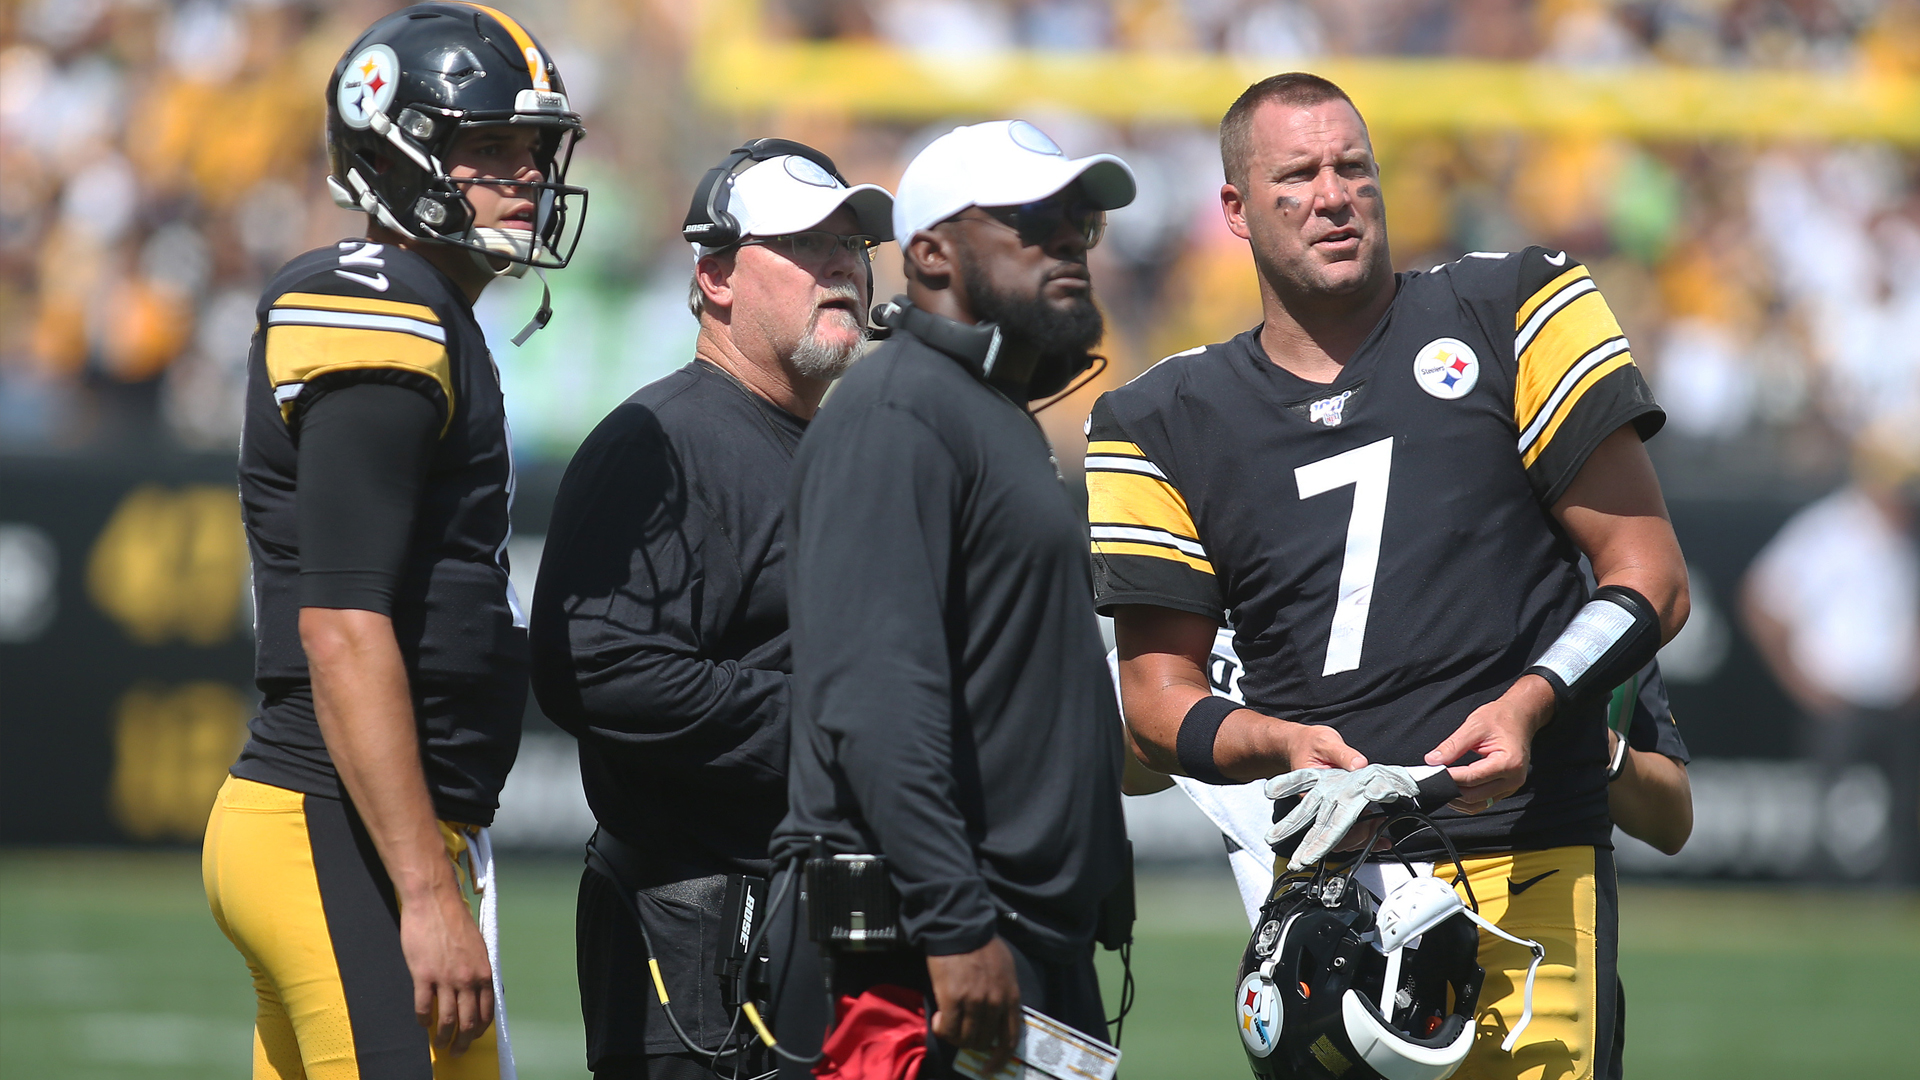 Kyle Shanahan 49ers Getting Ready To Face Mason Rudolph Led Steelers